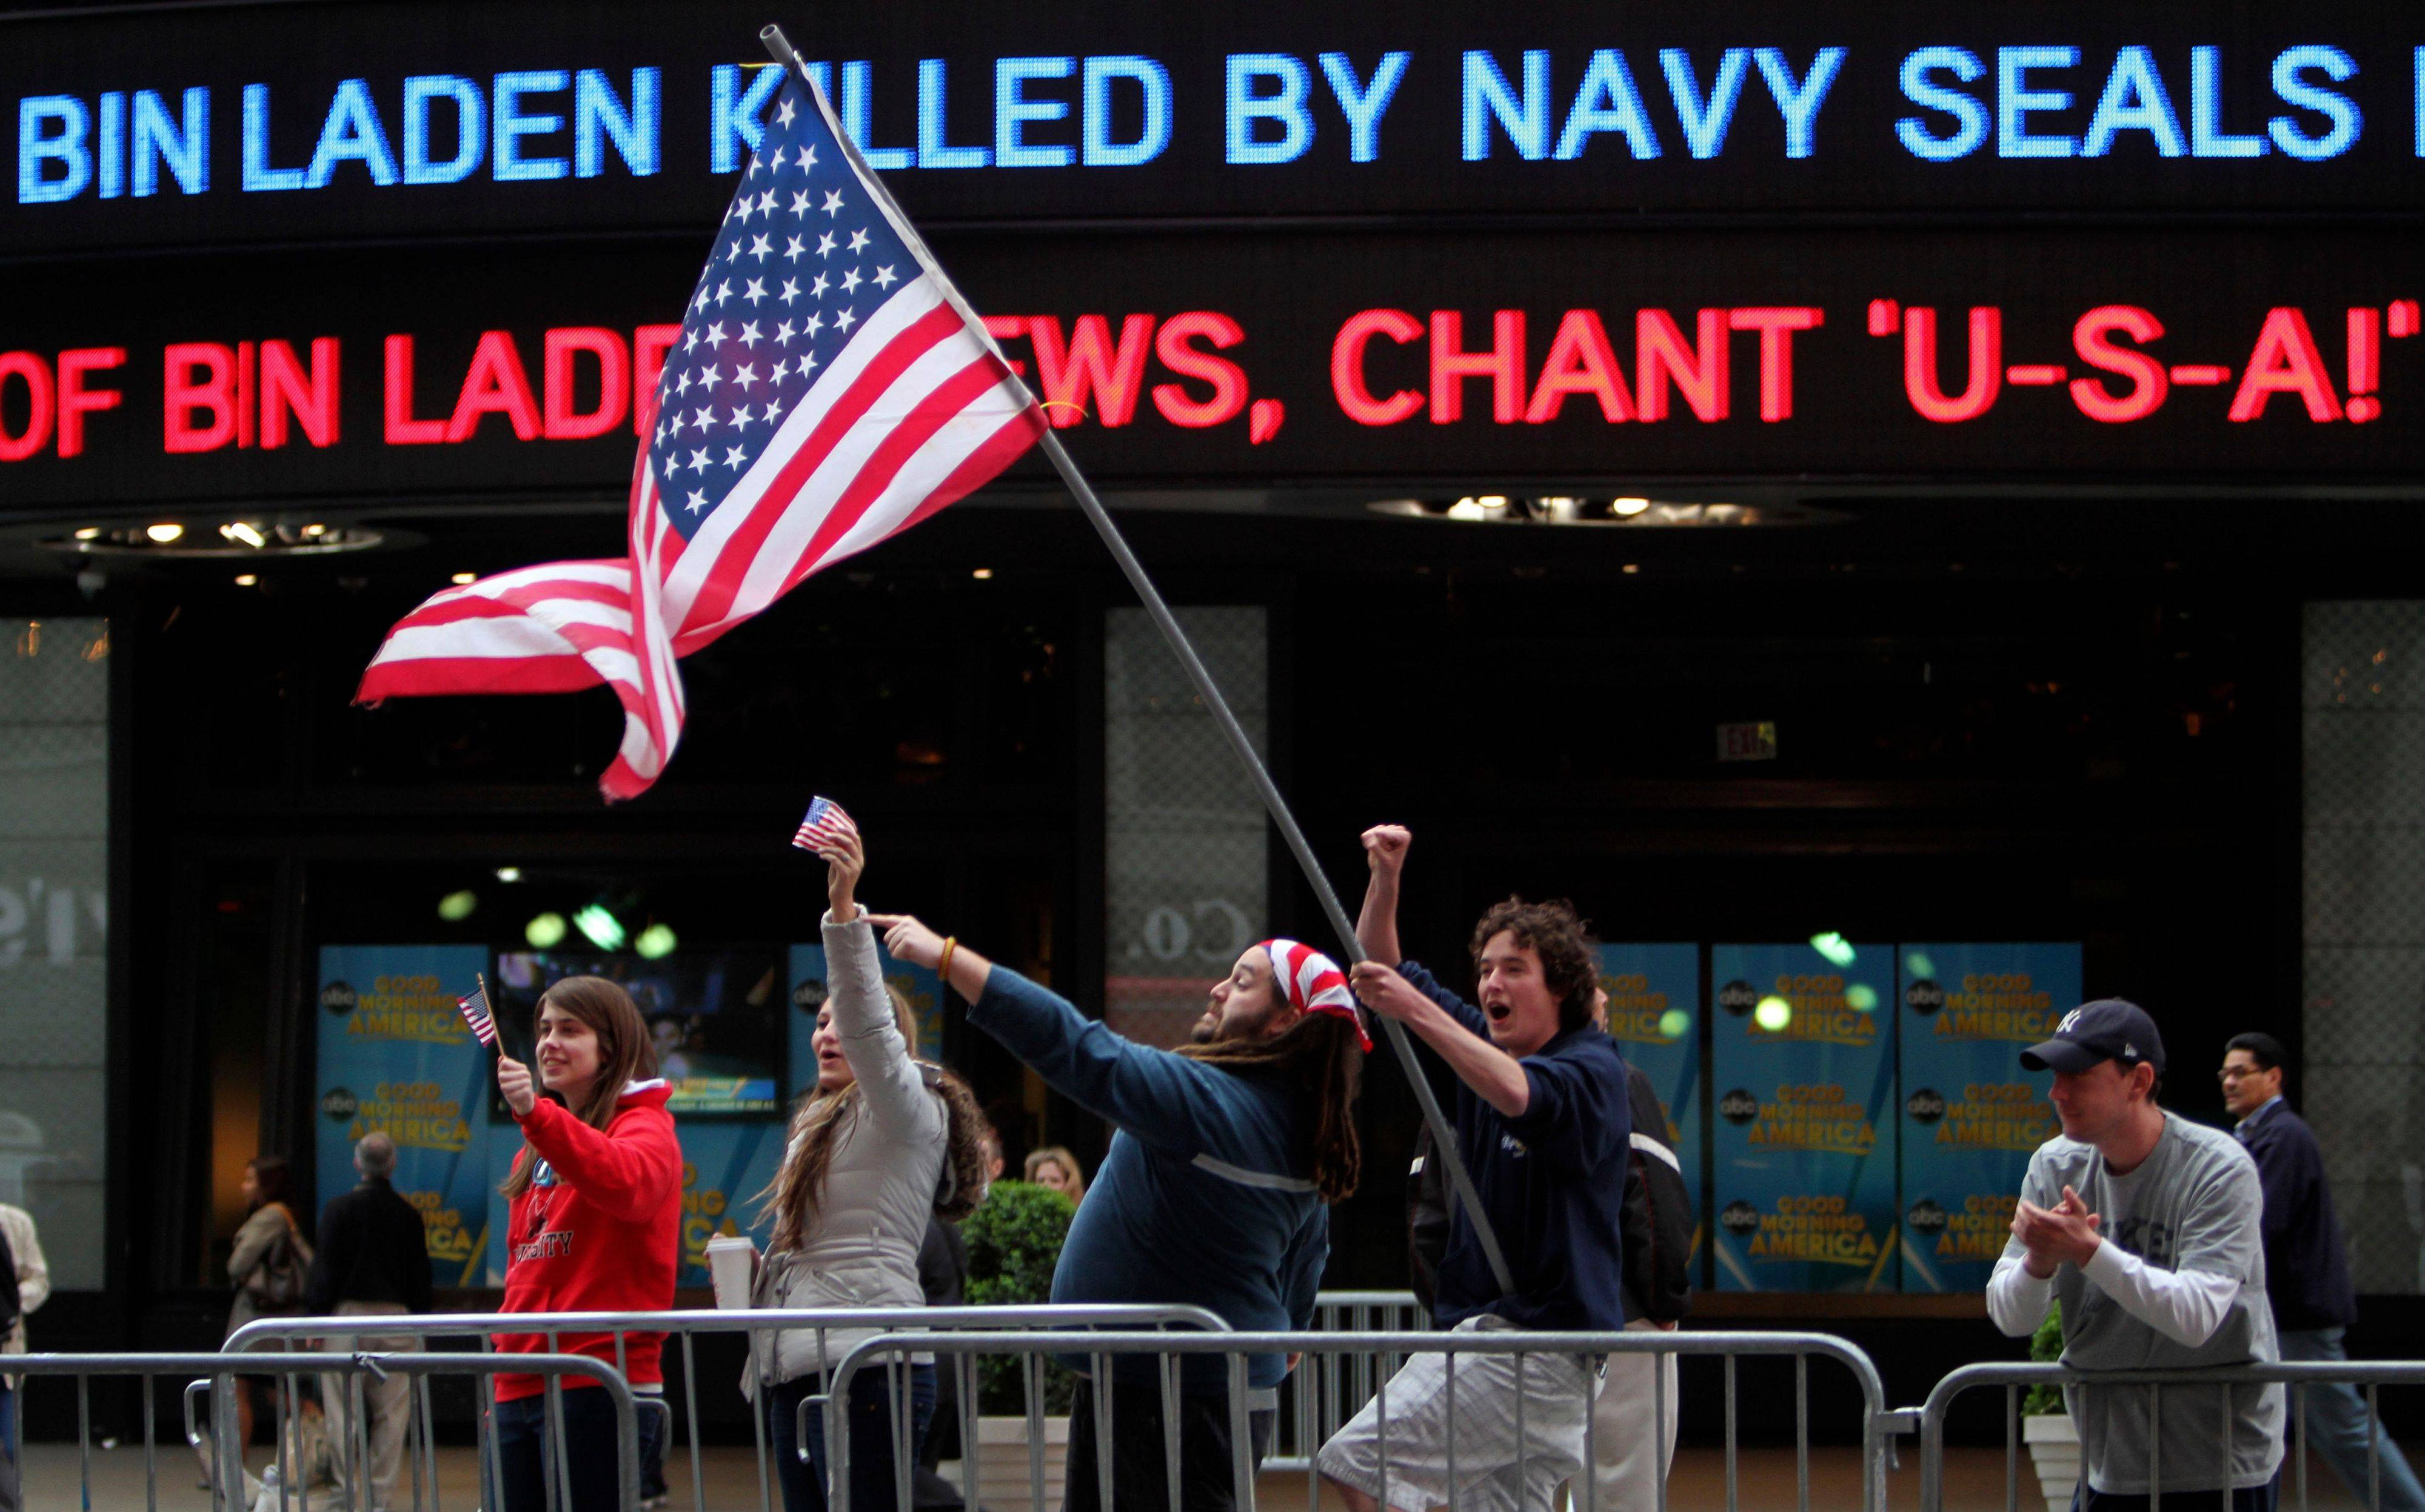 In the early morning after President Barack Obama's announcement that our troops had killed Osama bin Laden, Melissa LaCour, from left, Brittany McGarry, Bryan Murray and Dennis Vincent celebrate in New York's Times Square.